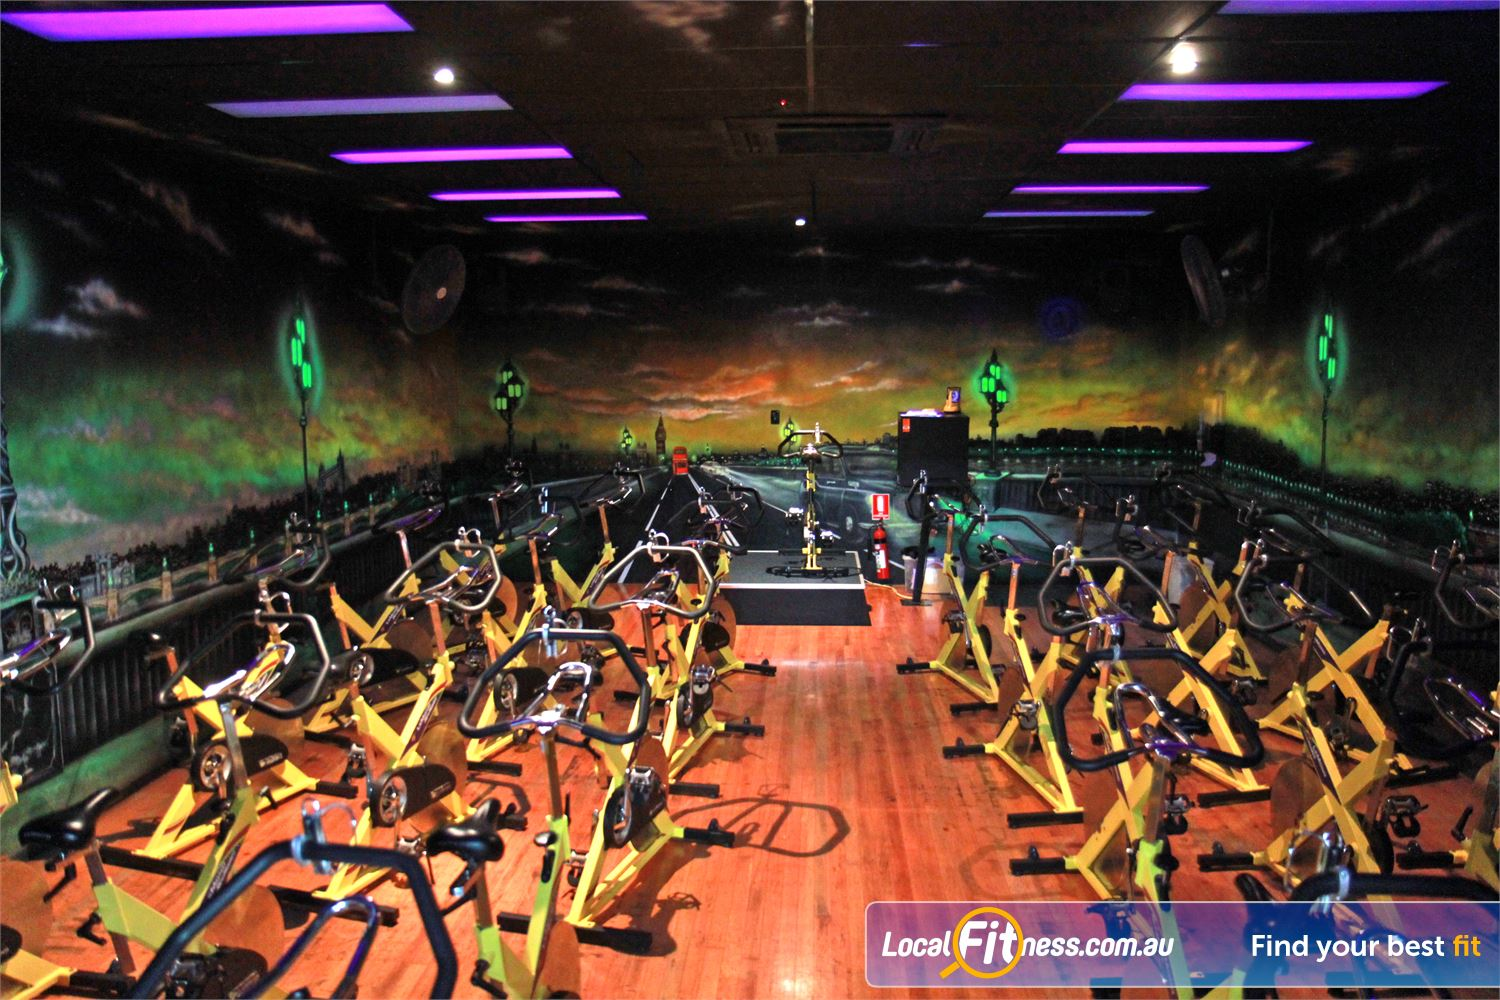 Goodlife Health Clubs Near Cleveland Dedicated Alexandra Hills spin cycle studio.